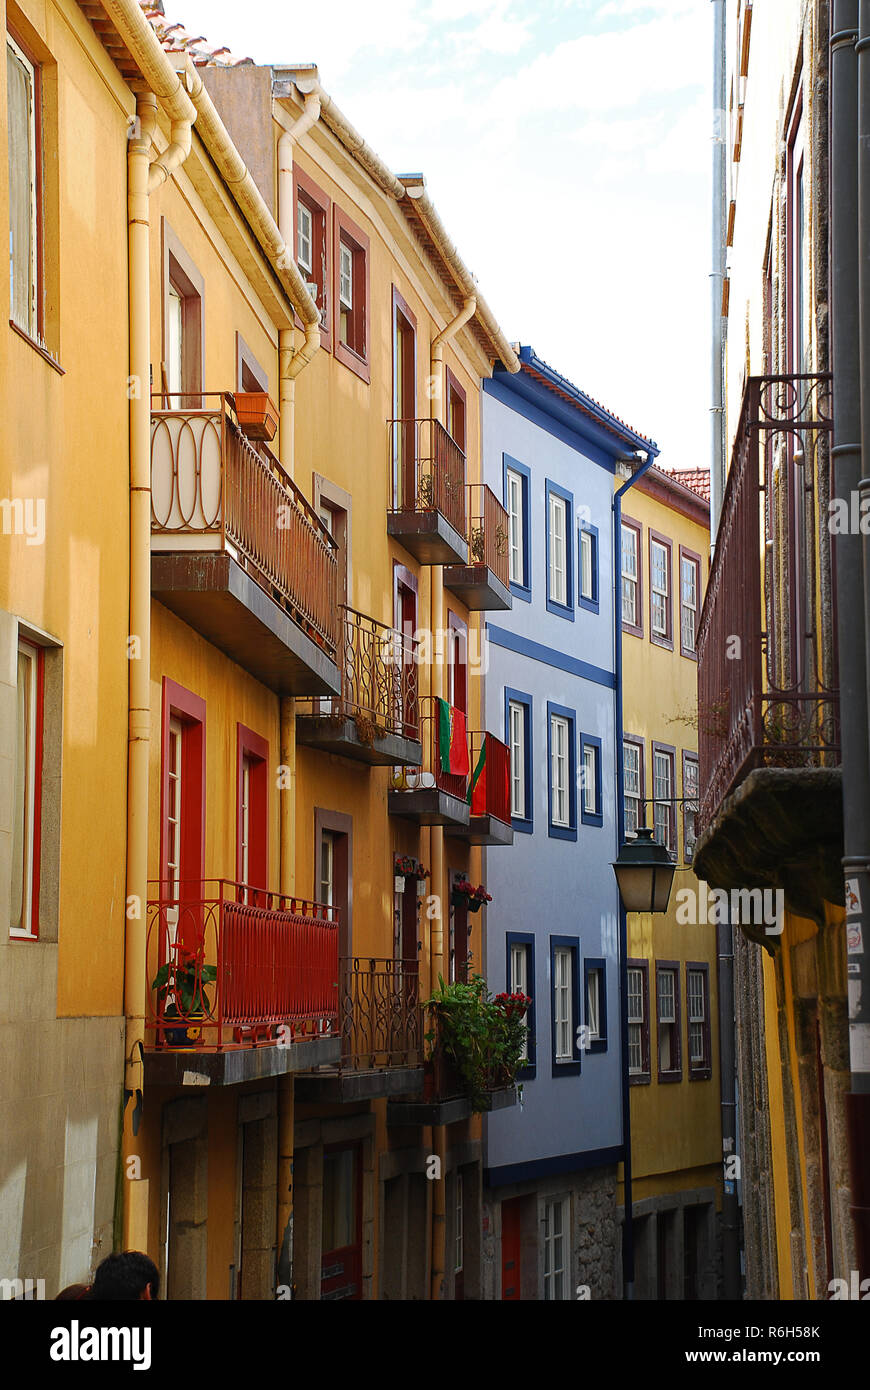 Typical colored house facades in Porto, Portugal. Porto is the second-largest city in Portugal after Lisbon - Stock Image